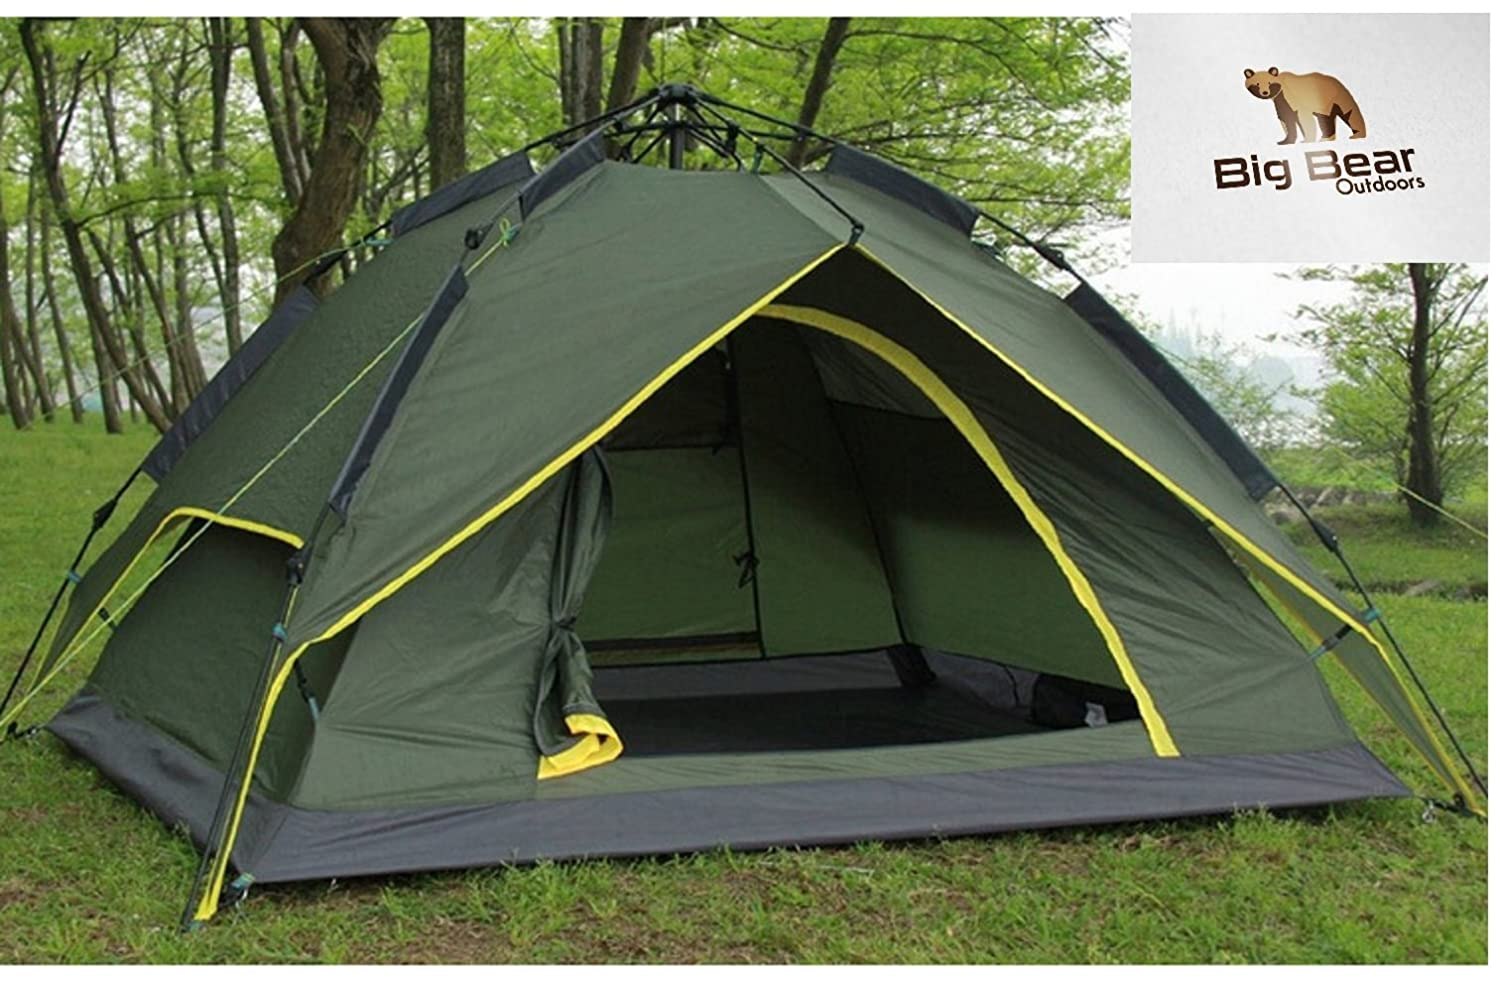 brand new 43474 f4848 Big Bear Outdoors Camping Tent - Automatic, Super Fast Folding, Pop Up, Pop  Down Tent with Wind-Proof Carbon Fibre Struts and Silver Lined Rain Tarp ...